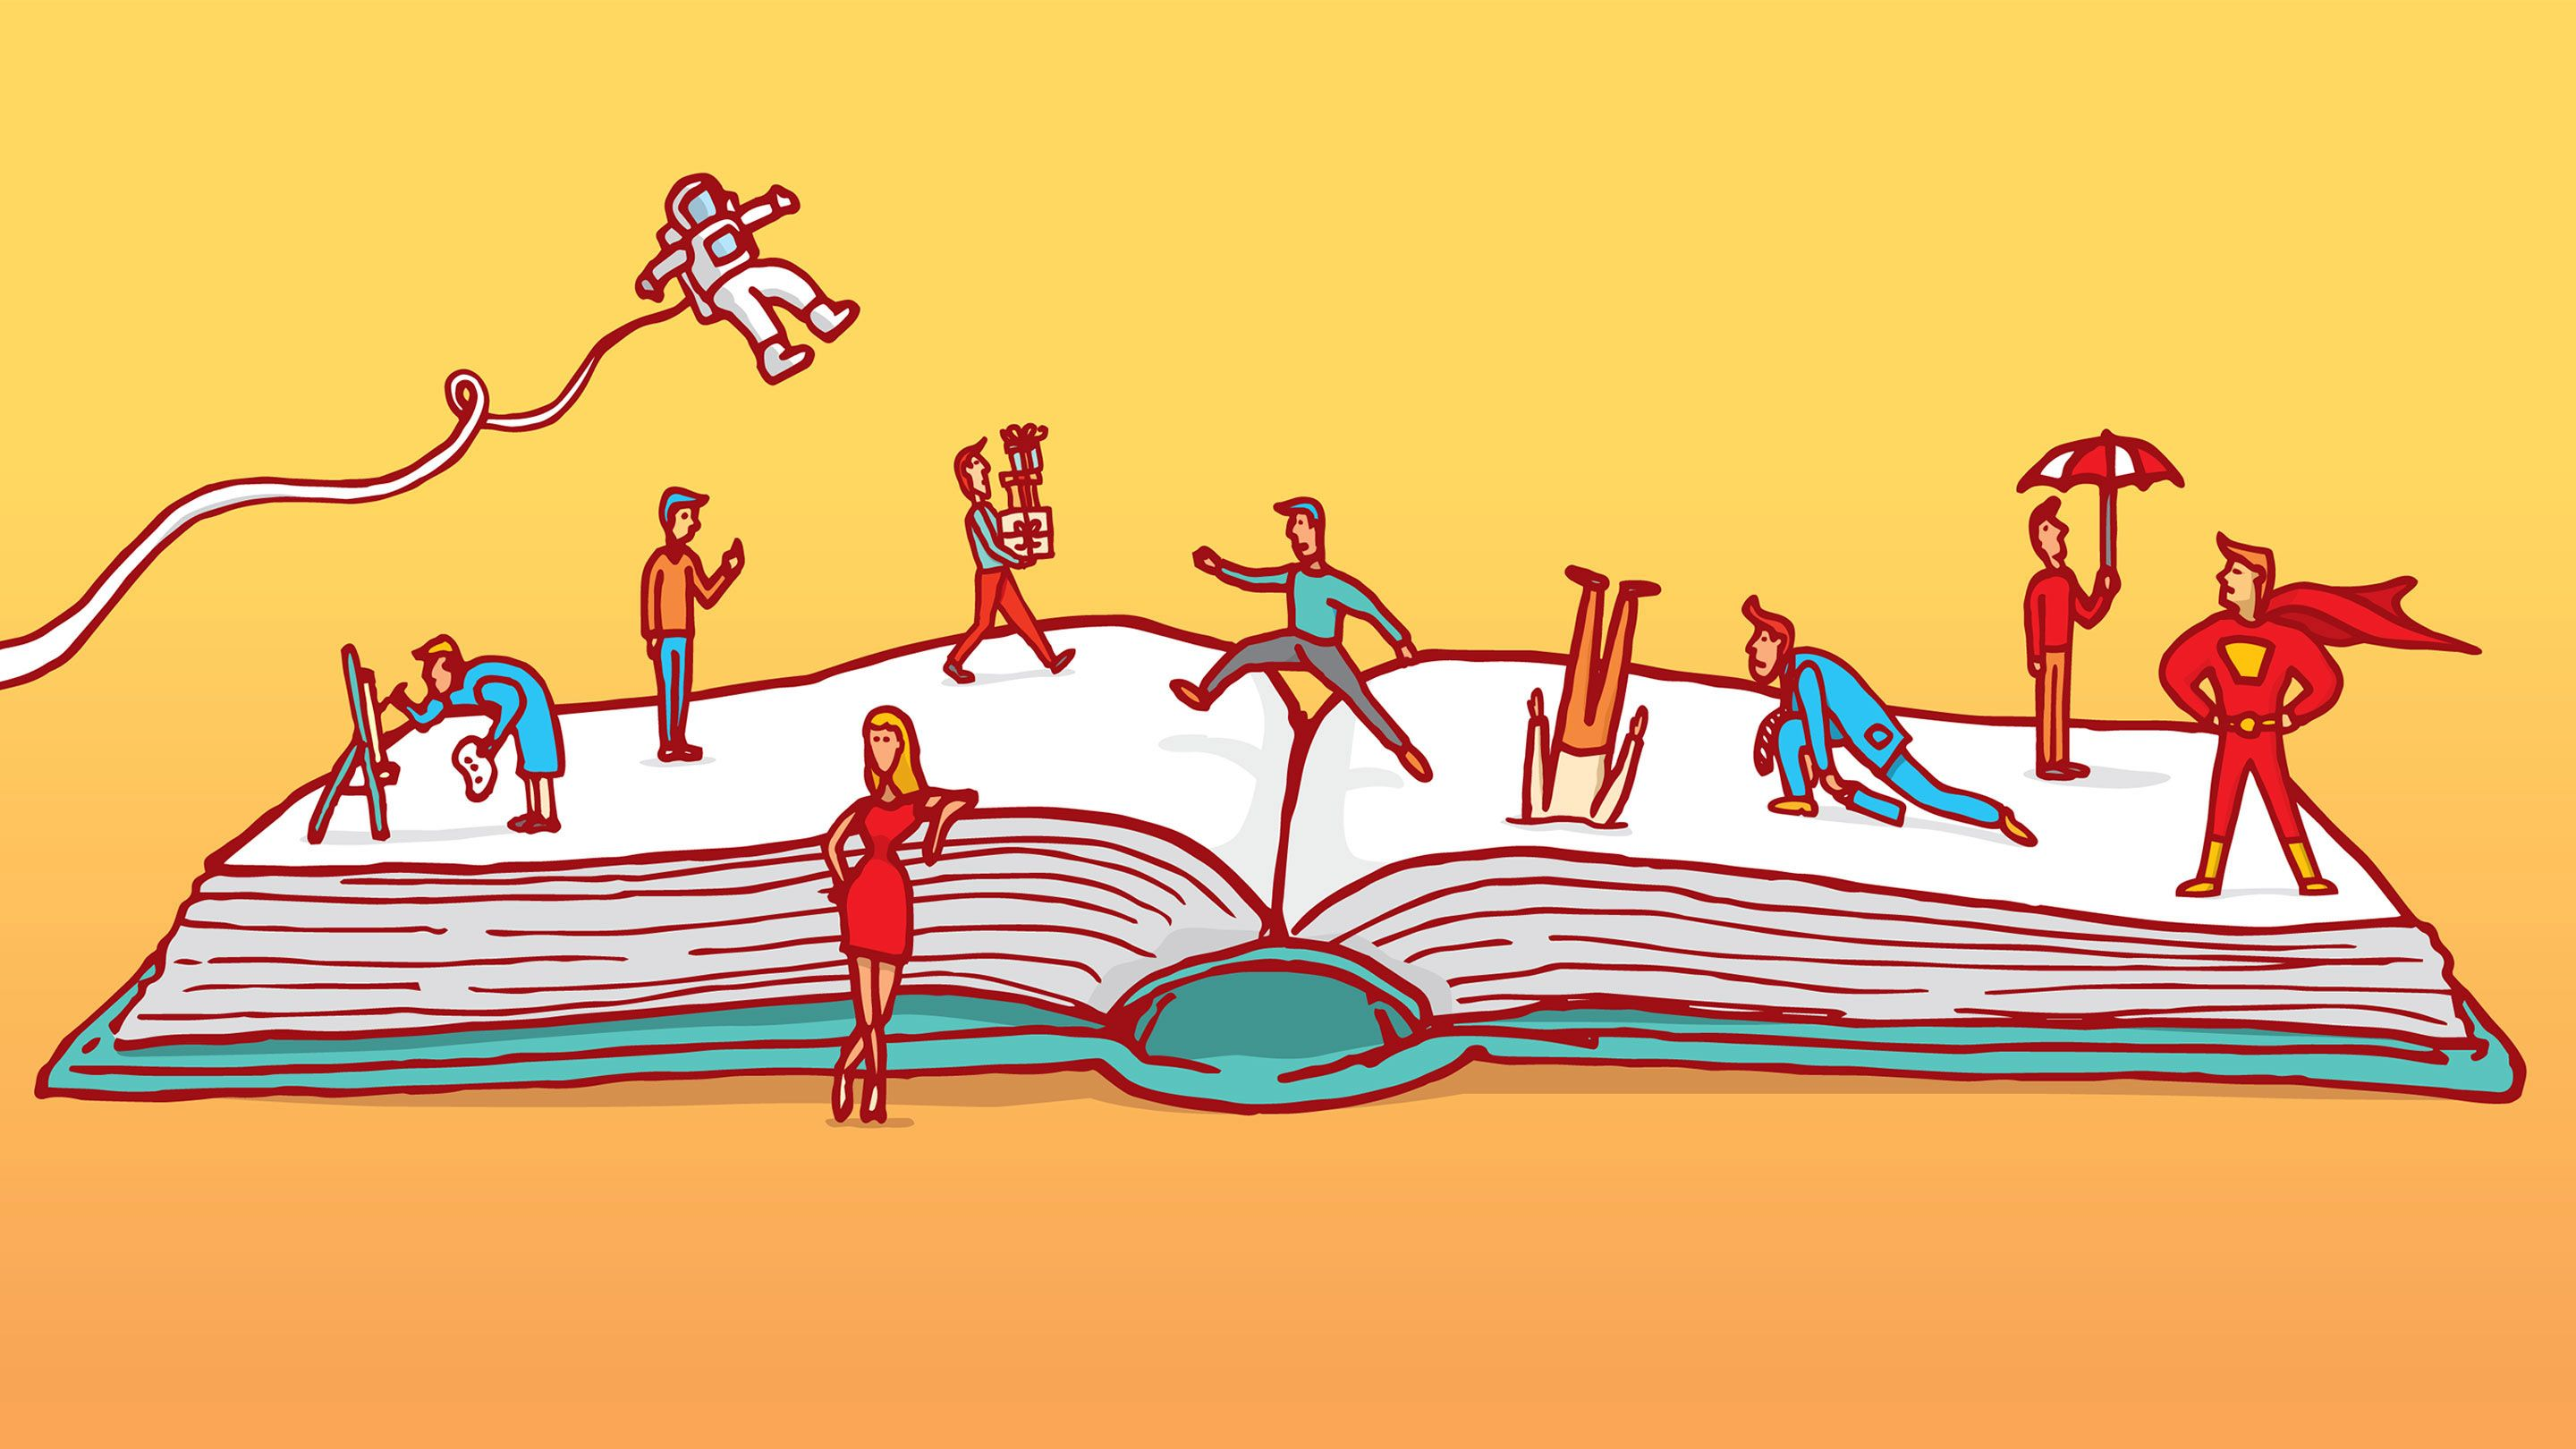 Illustration of various characters rising out of the pages of an open book